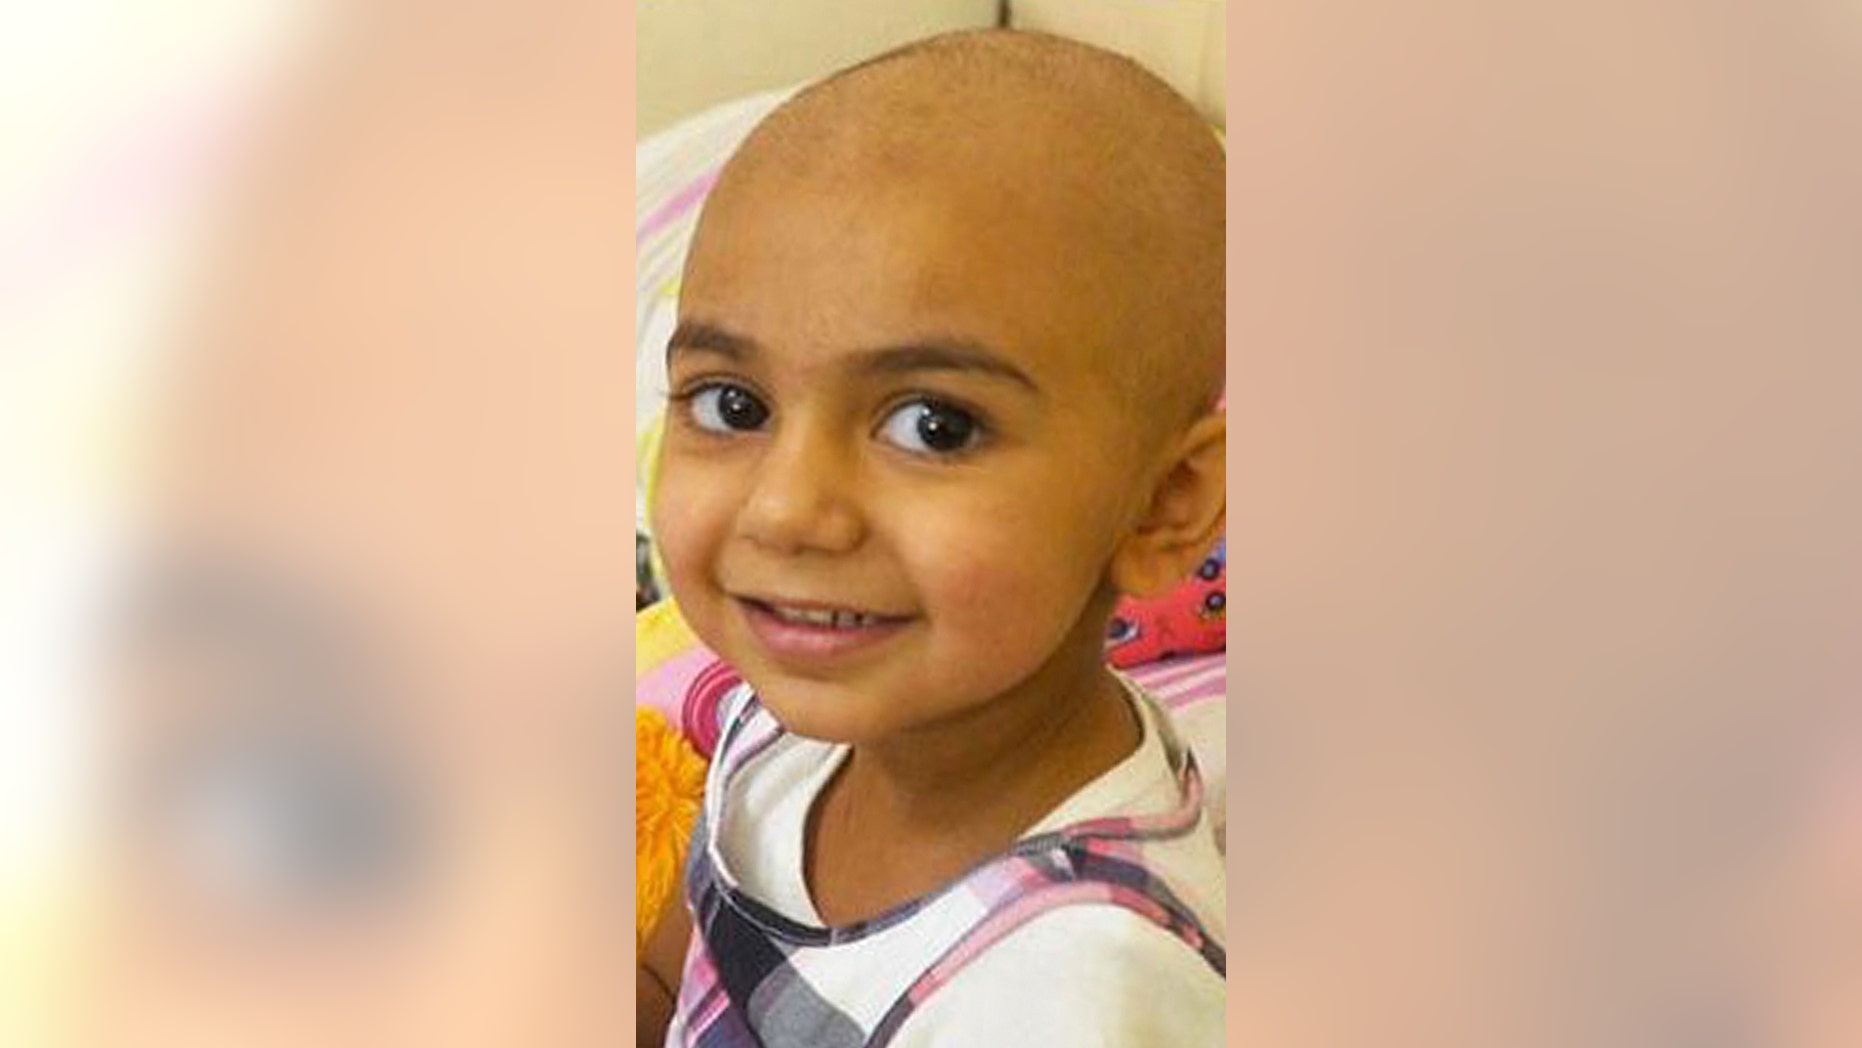 """Zainab Mughal, who has neuroblastoma and requires life-saving transfusions, is missing the """"Indian B"""" antigen in her blood due to a genetic mutation, complicating the search for her donor."""